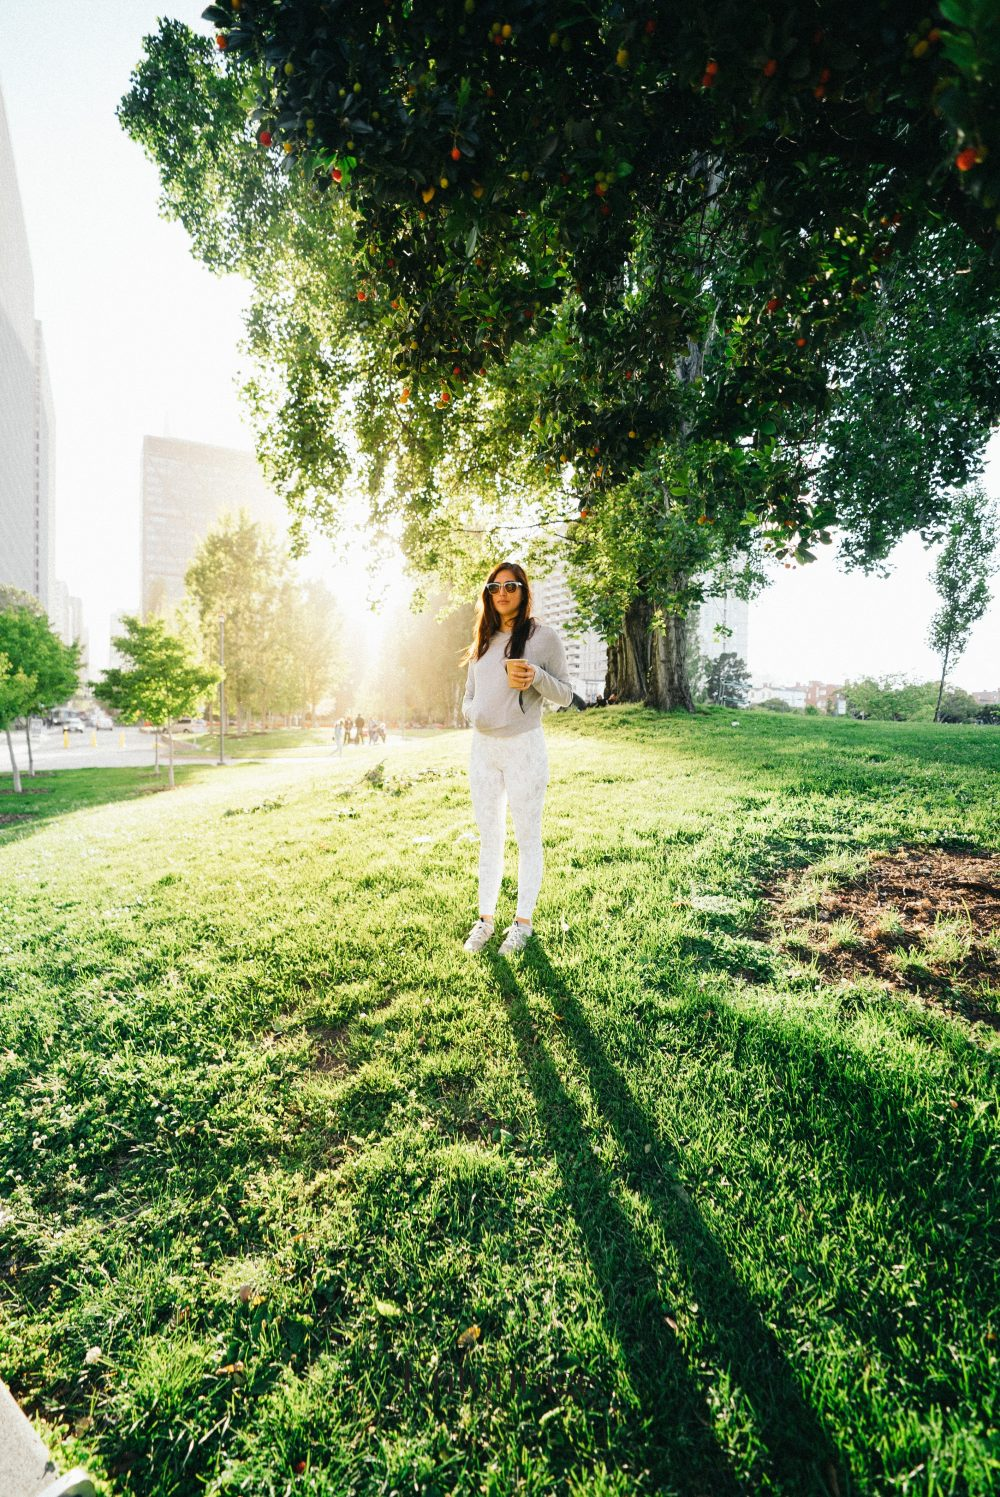 Woman standing in grass with sunshine